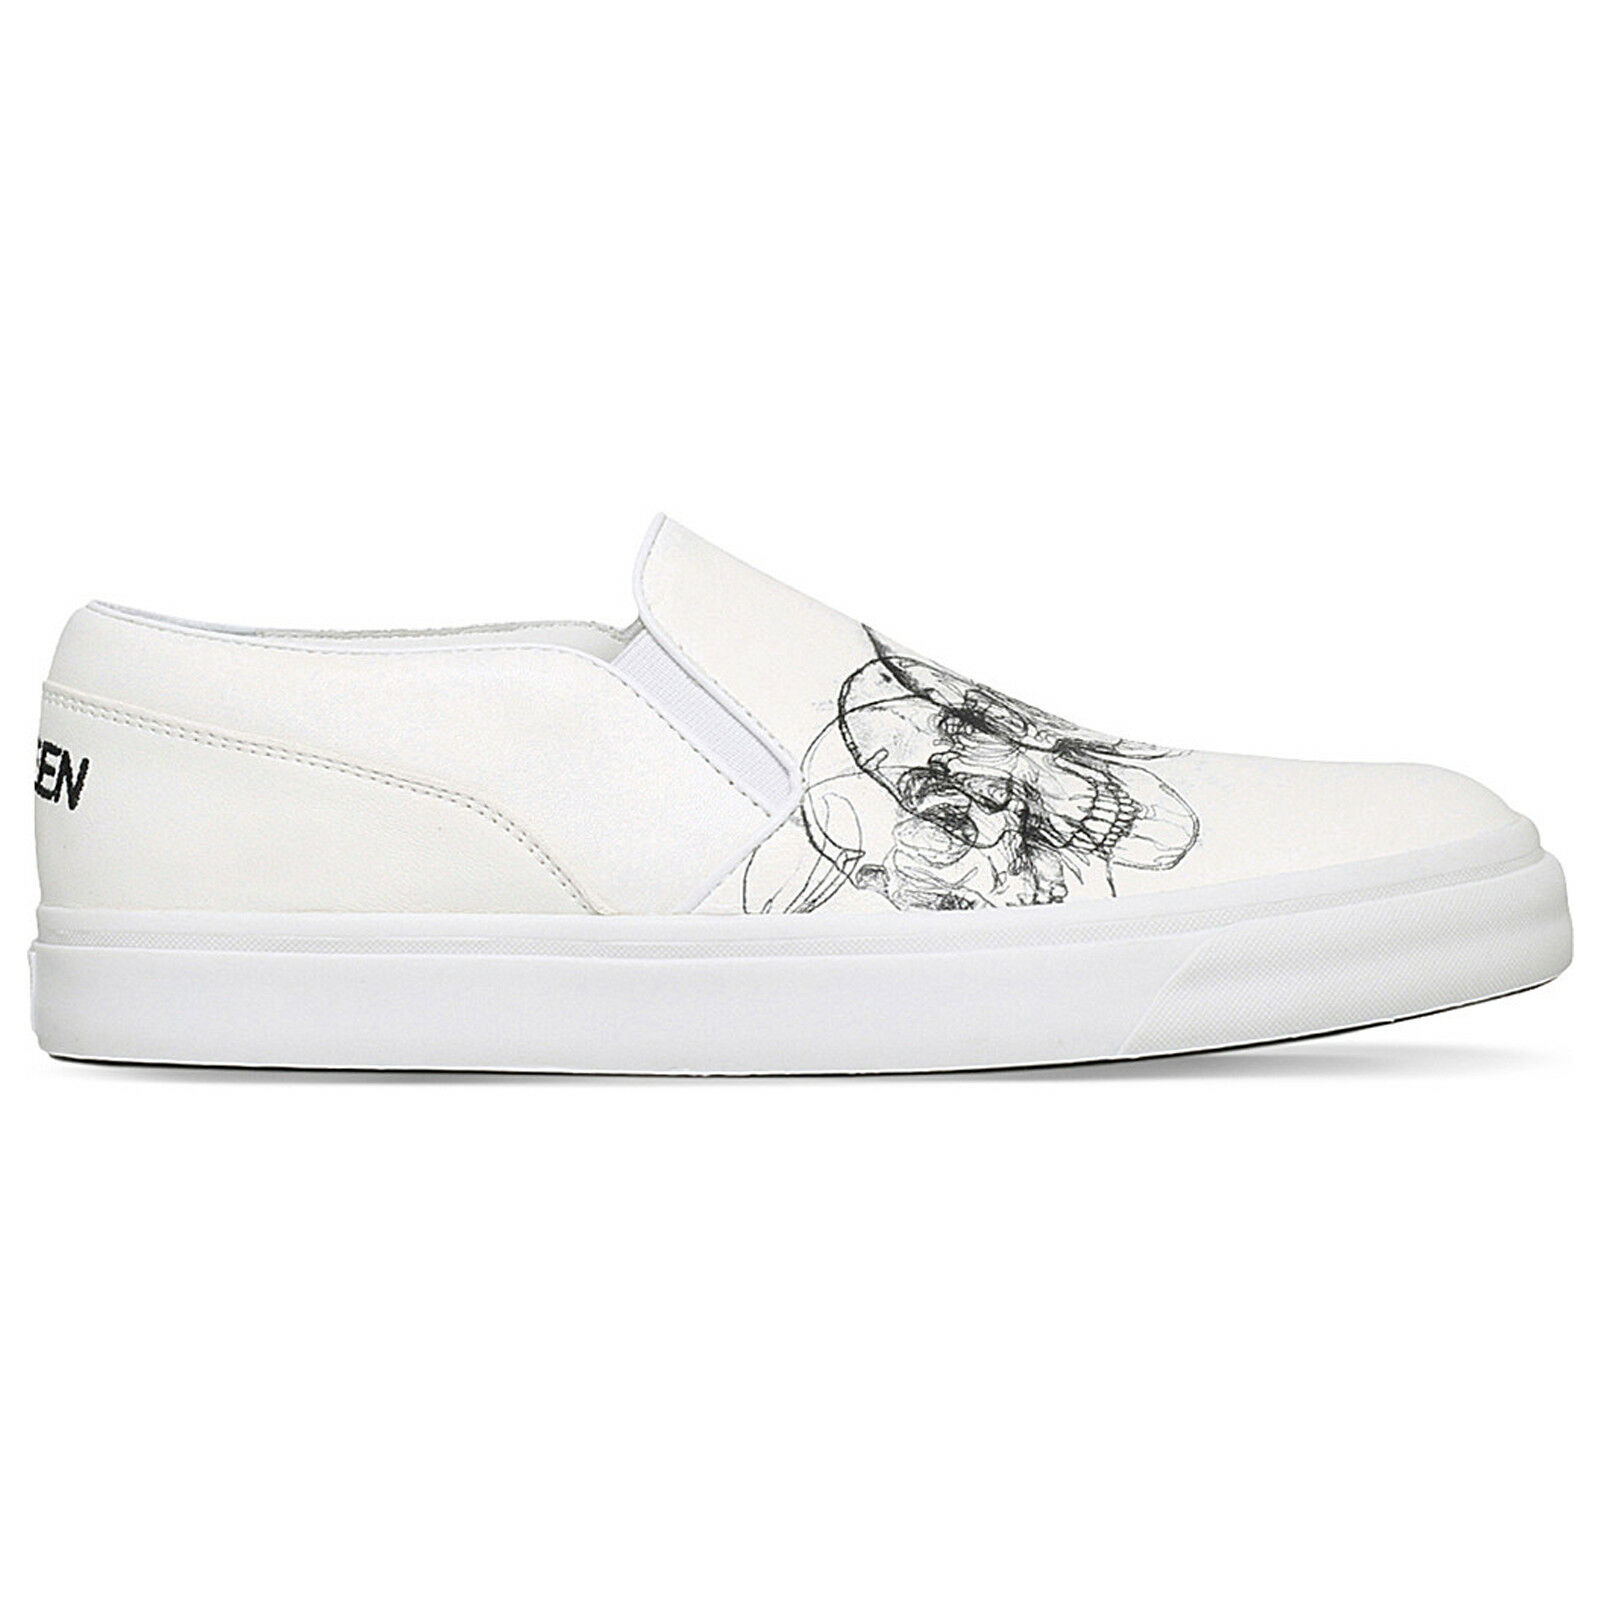 54ef7a4196e Alexander McQueen Leather Skull Print Slip-on Platform SNEAKERS ...